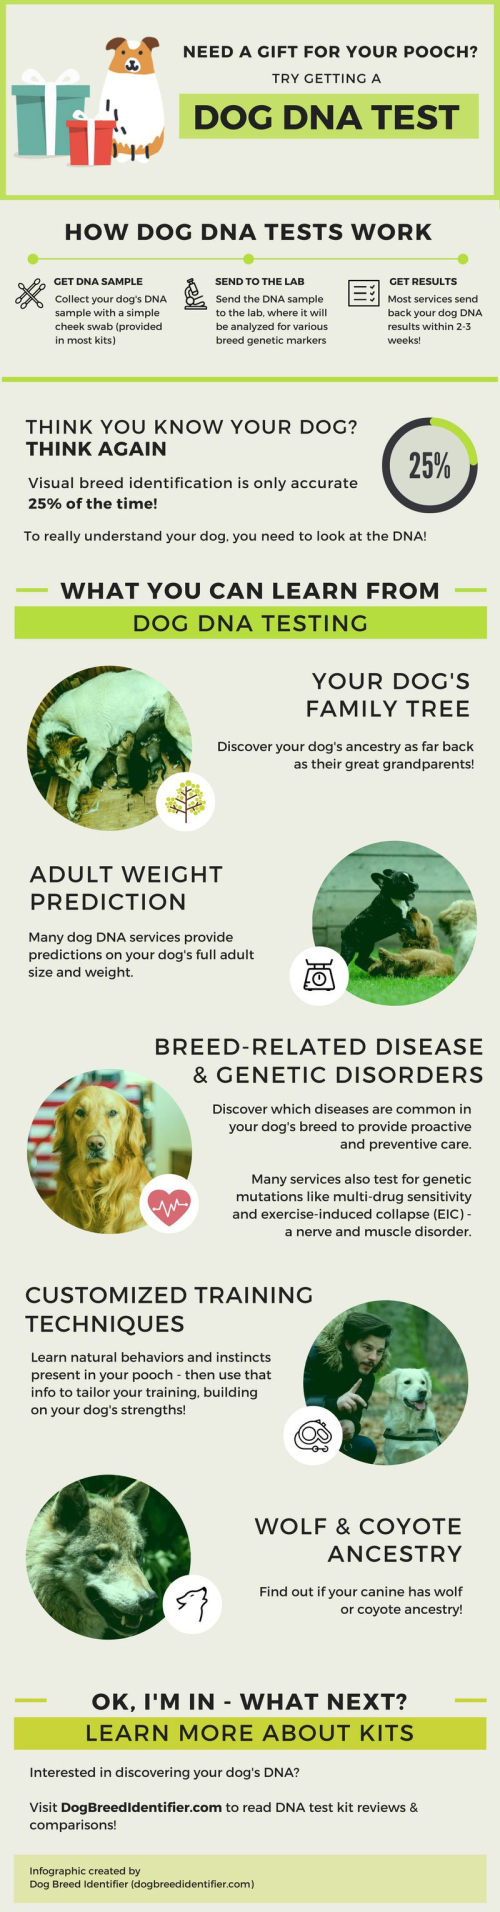 DogBreedDNA-Infographic-Full (1)